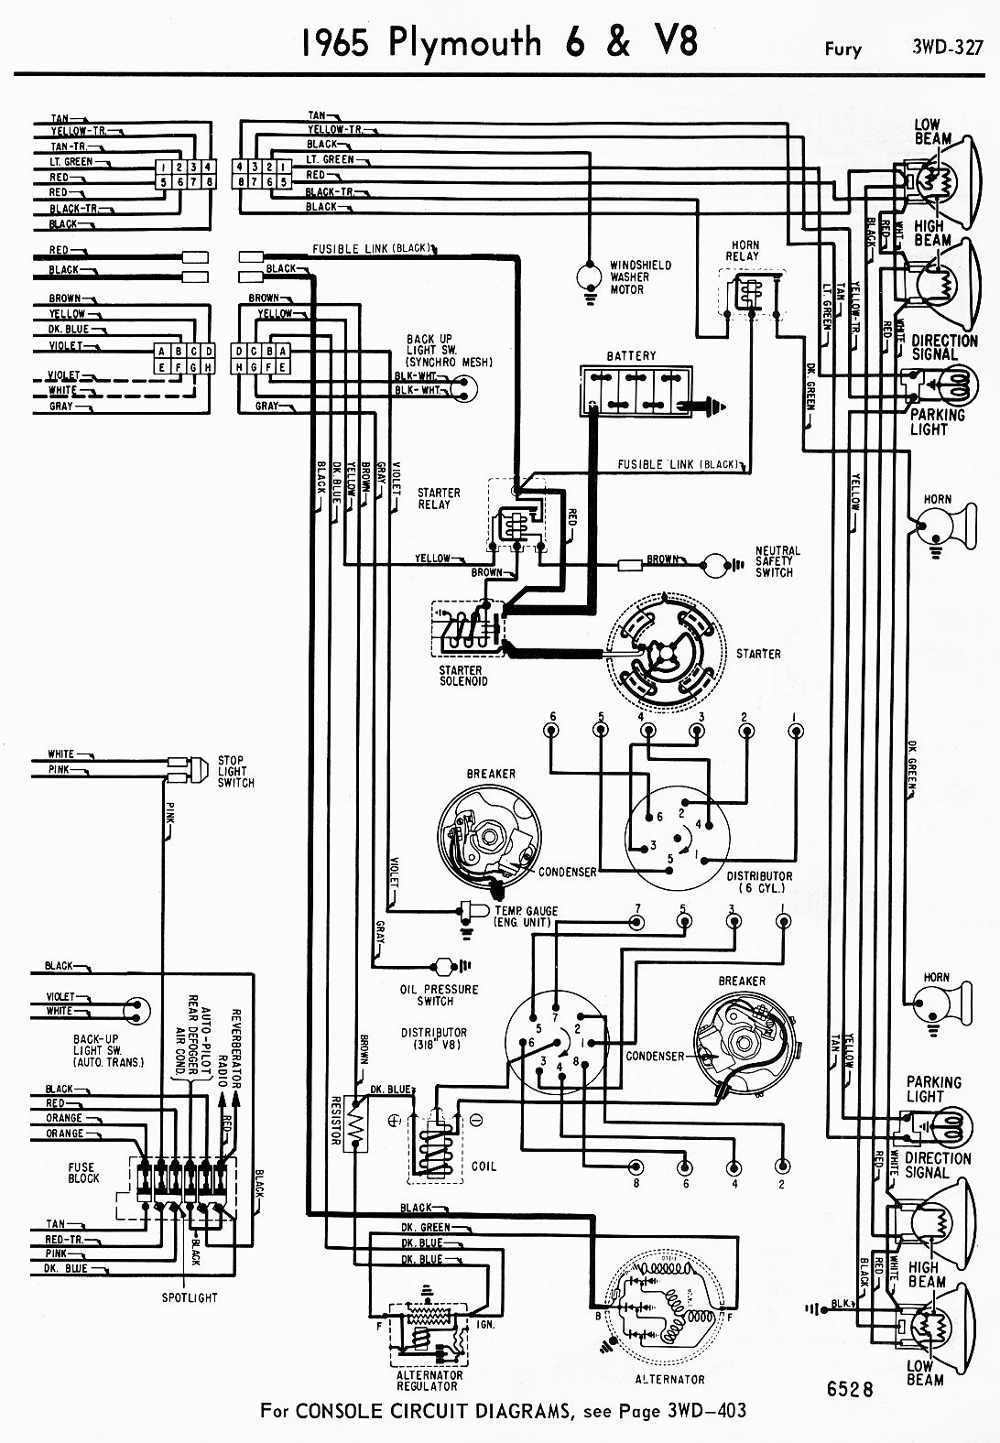 Plymouth Wiring Diagrams Automotive Diy Alfa Romeo 75 Diagram Library Of Car Manuals Pdf Fault Codes Rh Net